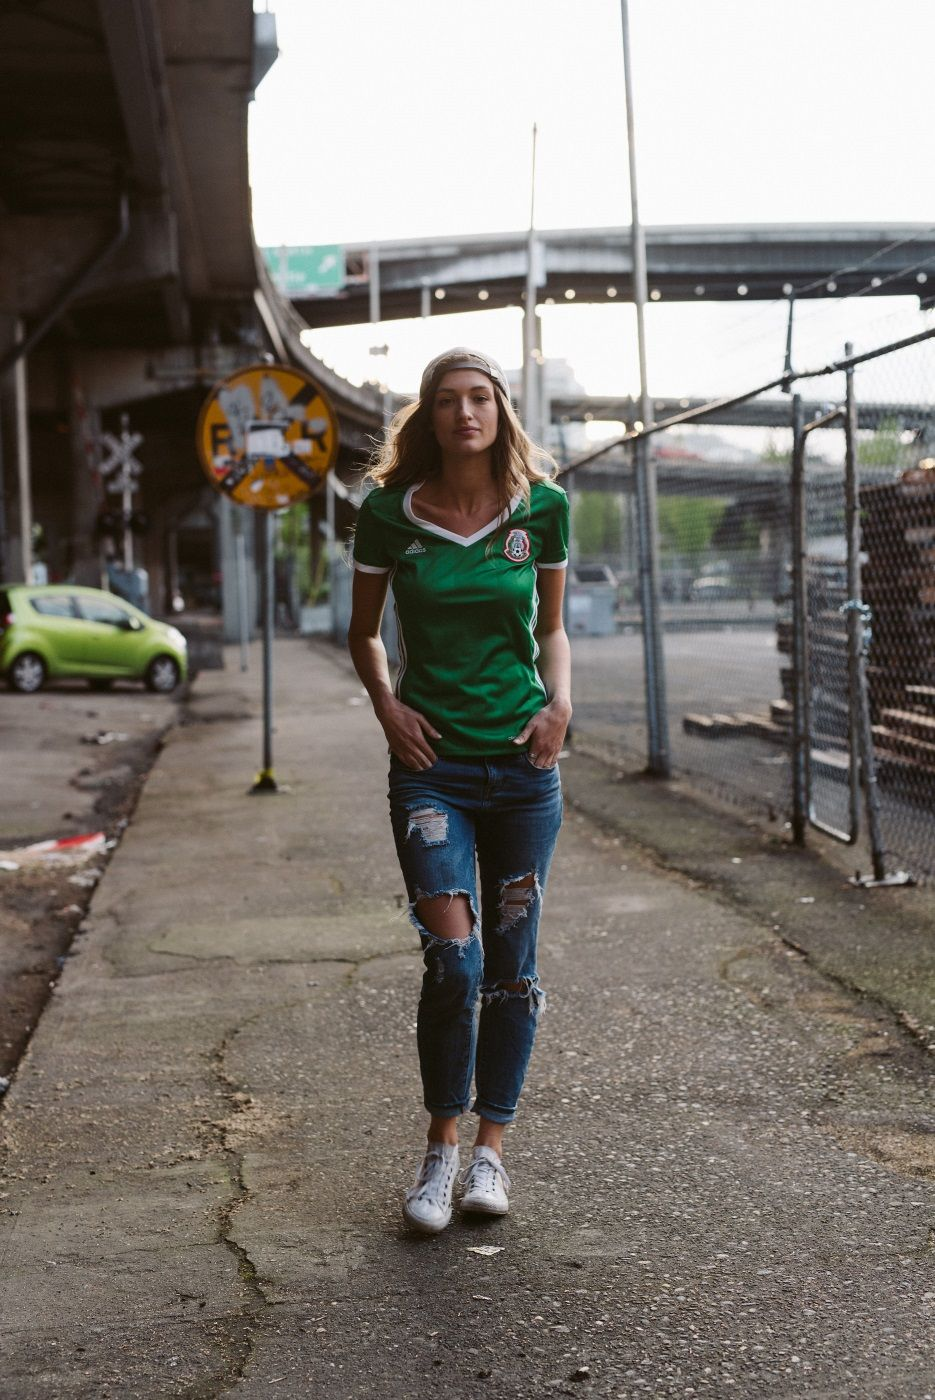 Mexico 2016 Home Soccer Jersey On Sale Now At Worldsoccershop Com Jersey Fashion Soccer Game Outfits Soccer Outfits